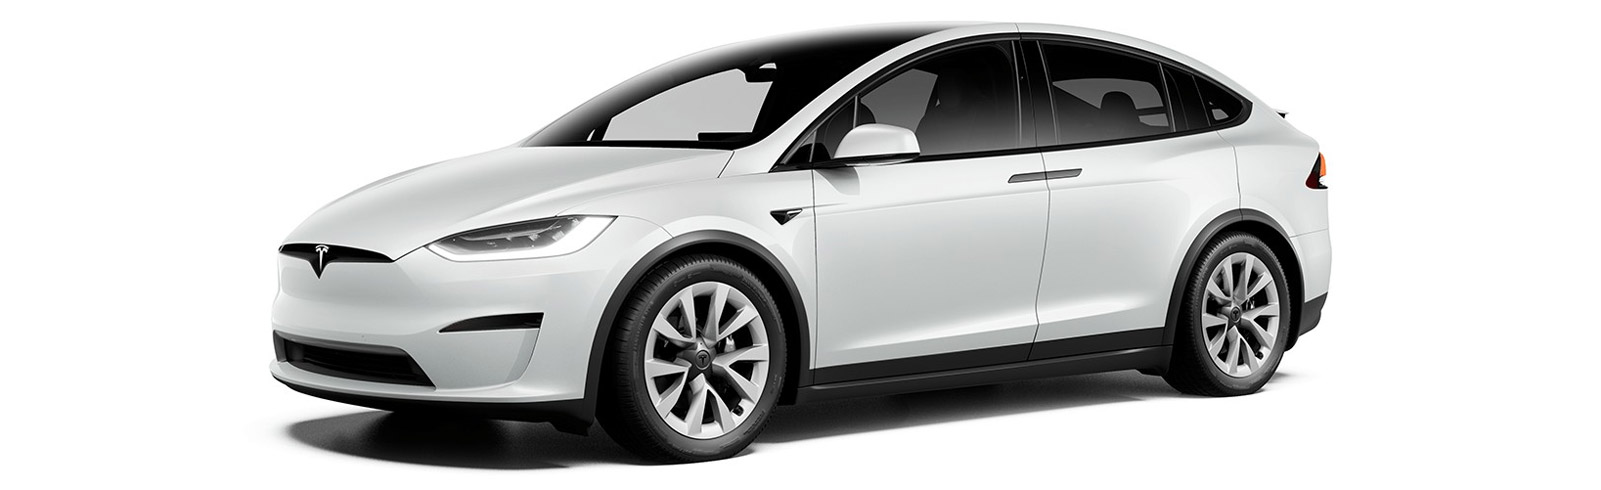 2021 Tesla Model X refresh - new features, specifications, trims, pricing